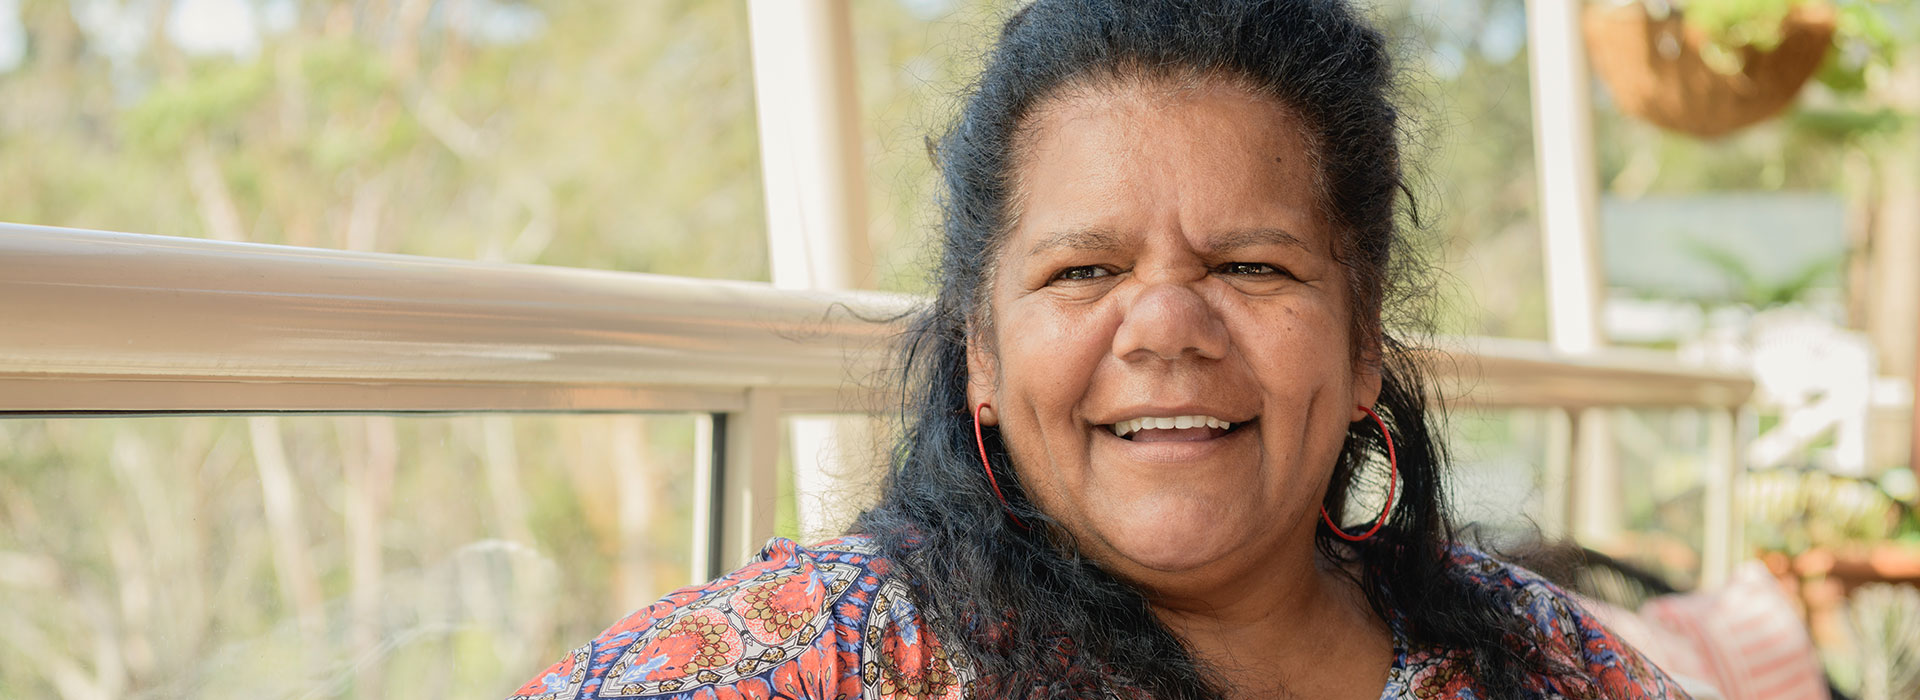 Indigenous Australian woman smiling off camera. Behind her is bush land.